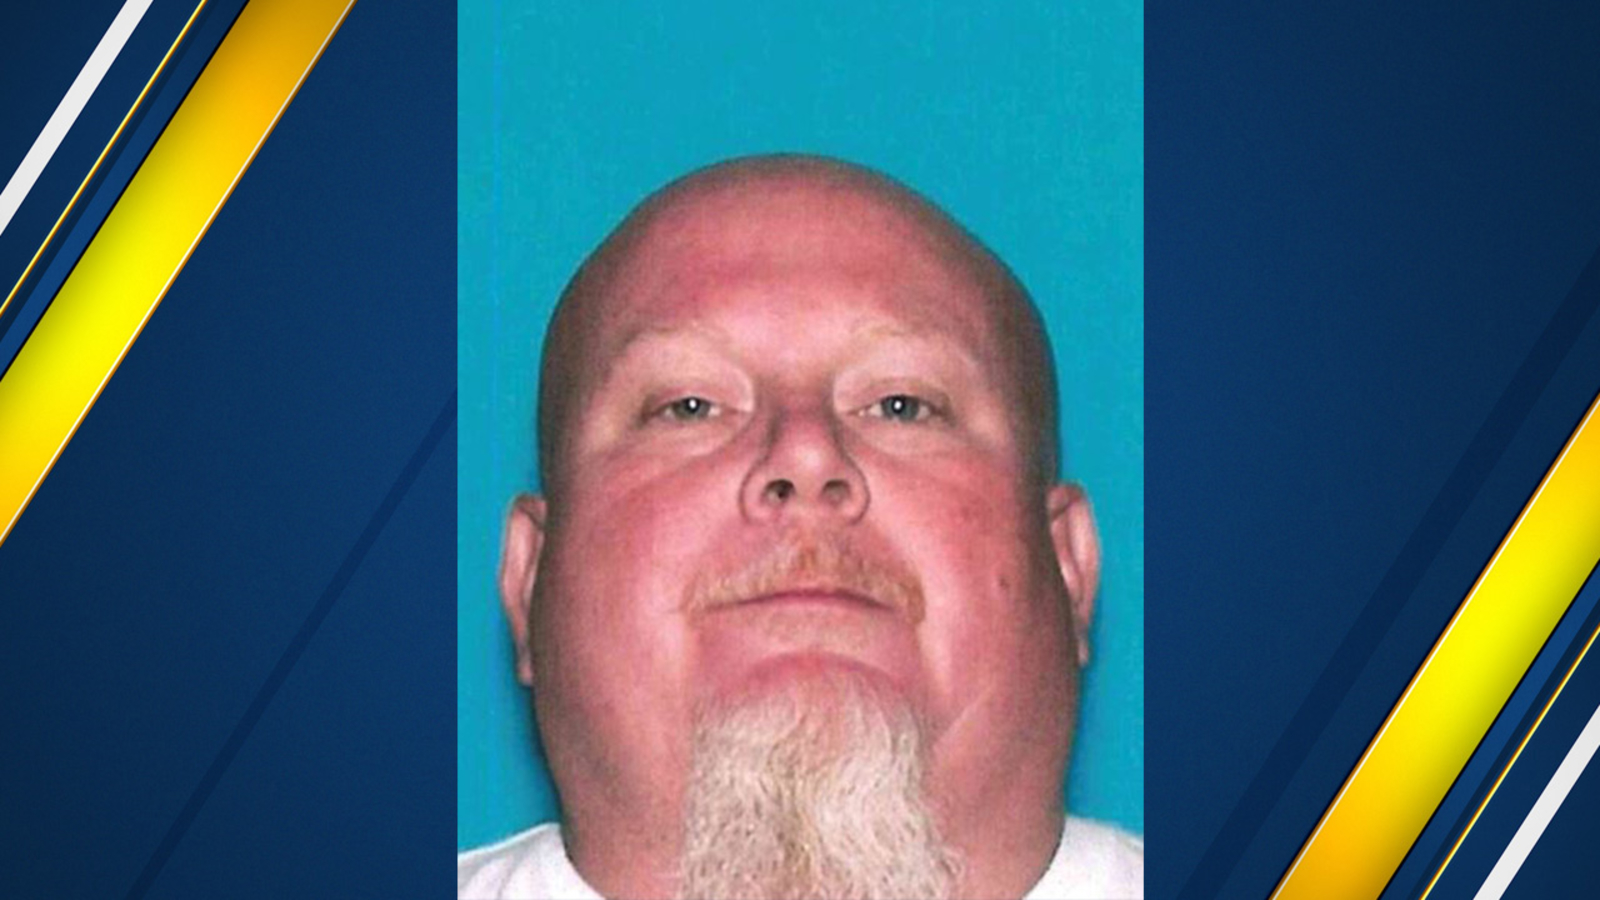 Manhunt underway for Farmersville man accused of shooting wife during domestic dispute